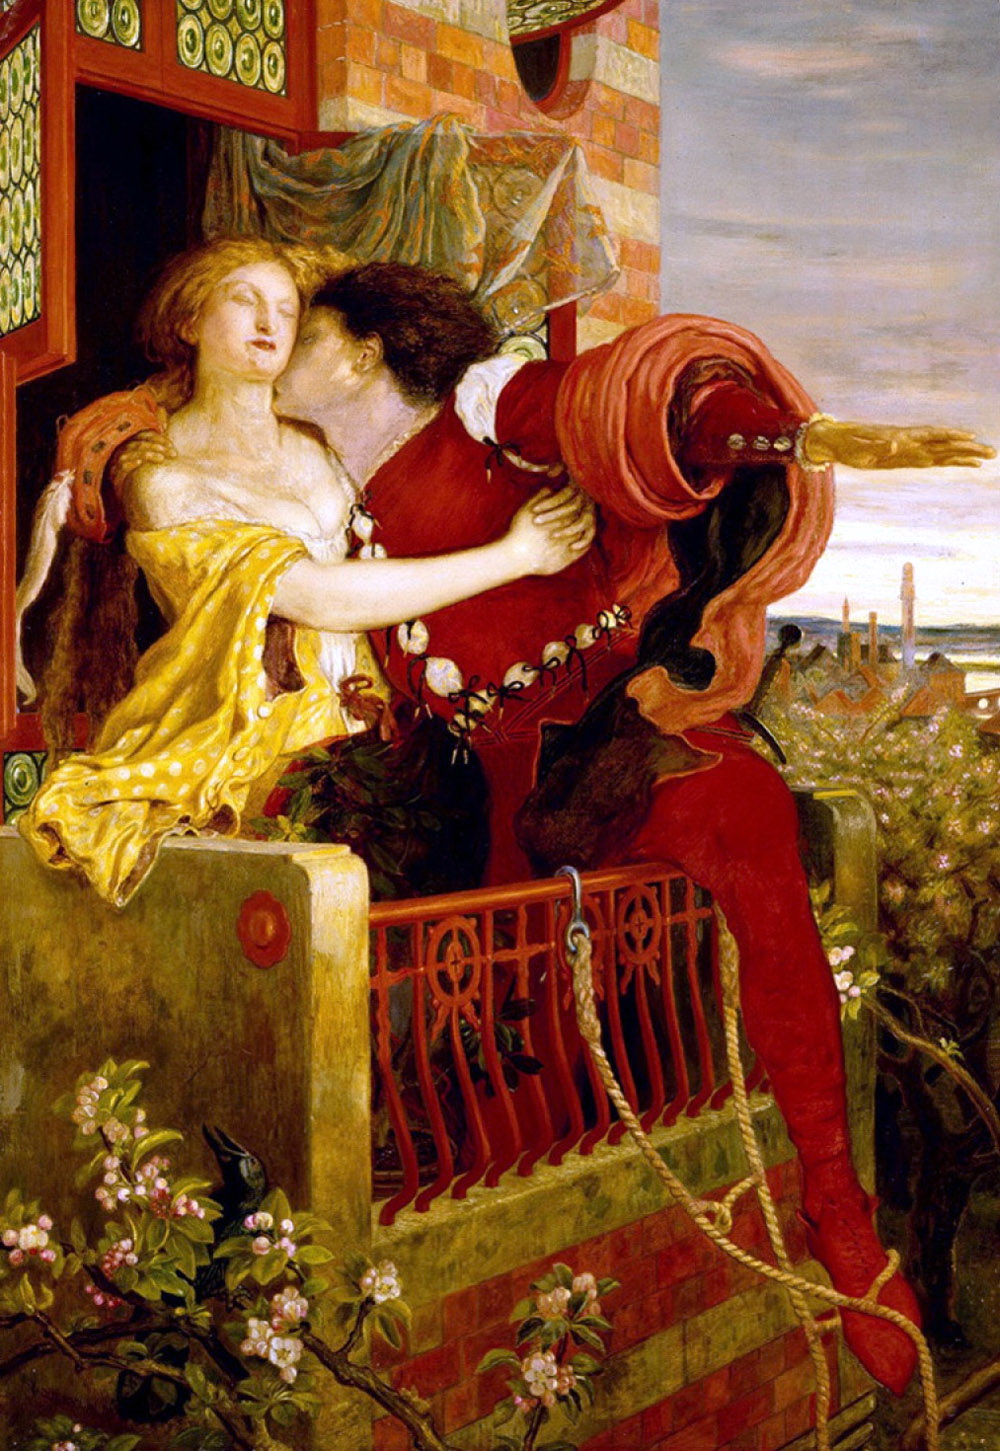 an analysis of the crucial events for the development of the tragedy in romeo and juliet a play by w Romeo and juliet: an analysis the play romeo and juliet is an early creation of the well-known playwright, william shakespeare, who lived between 1564 and 1616 this time was known as the renaissance period, and it was mainly literary.